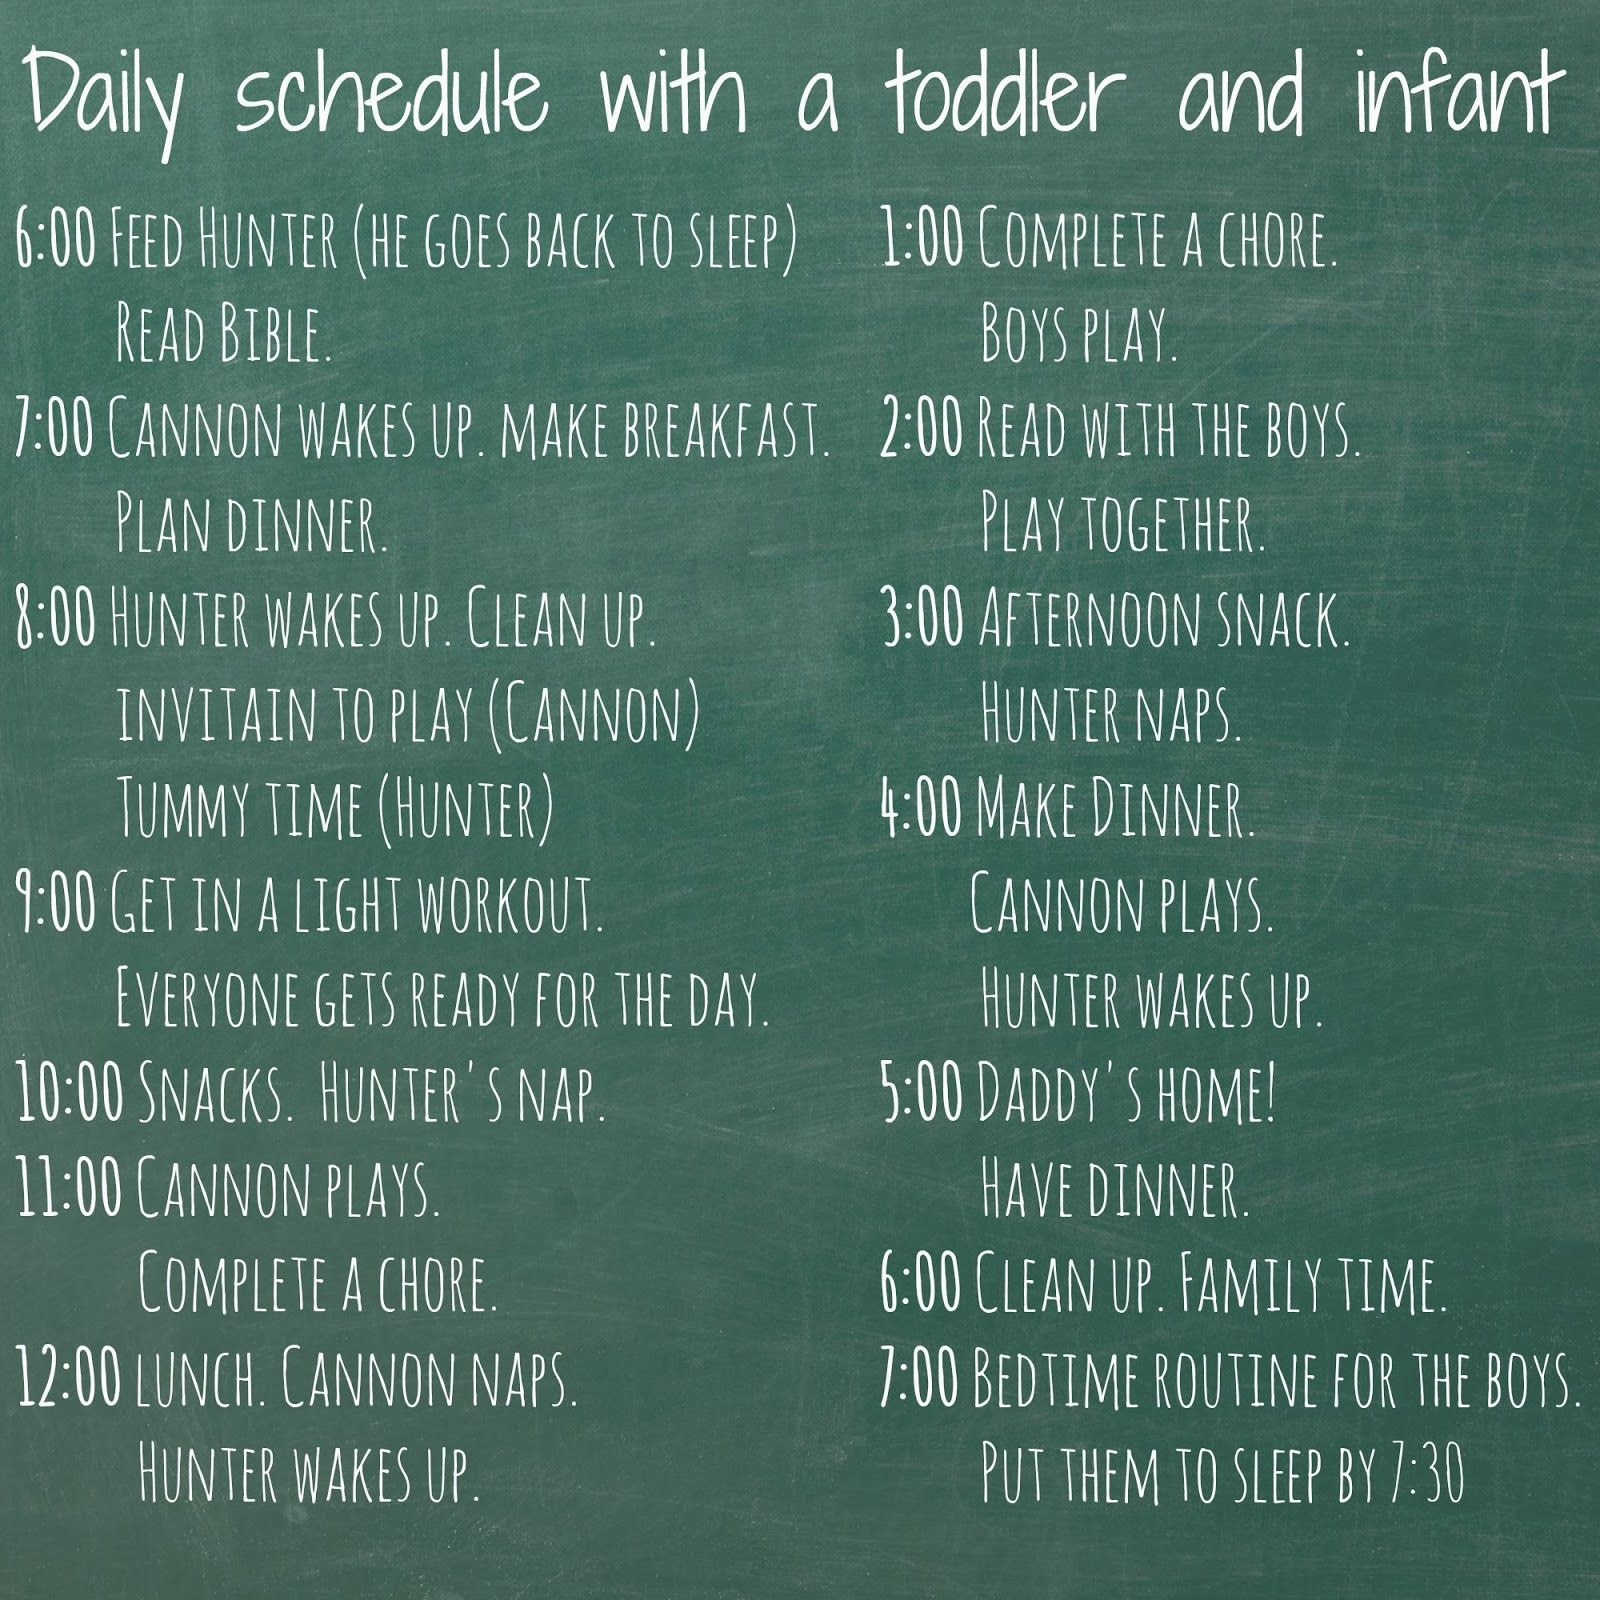 Daily schedule with a Toddler and Infant   Ideas, Toddlers and Infants